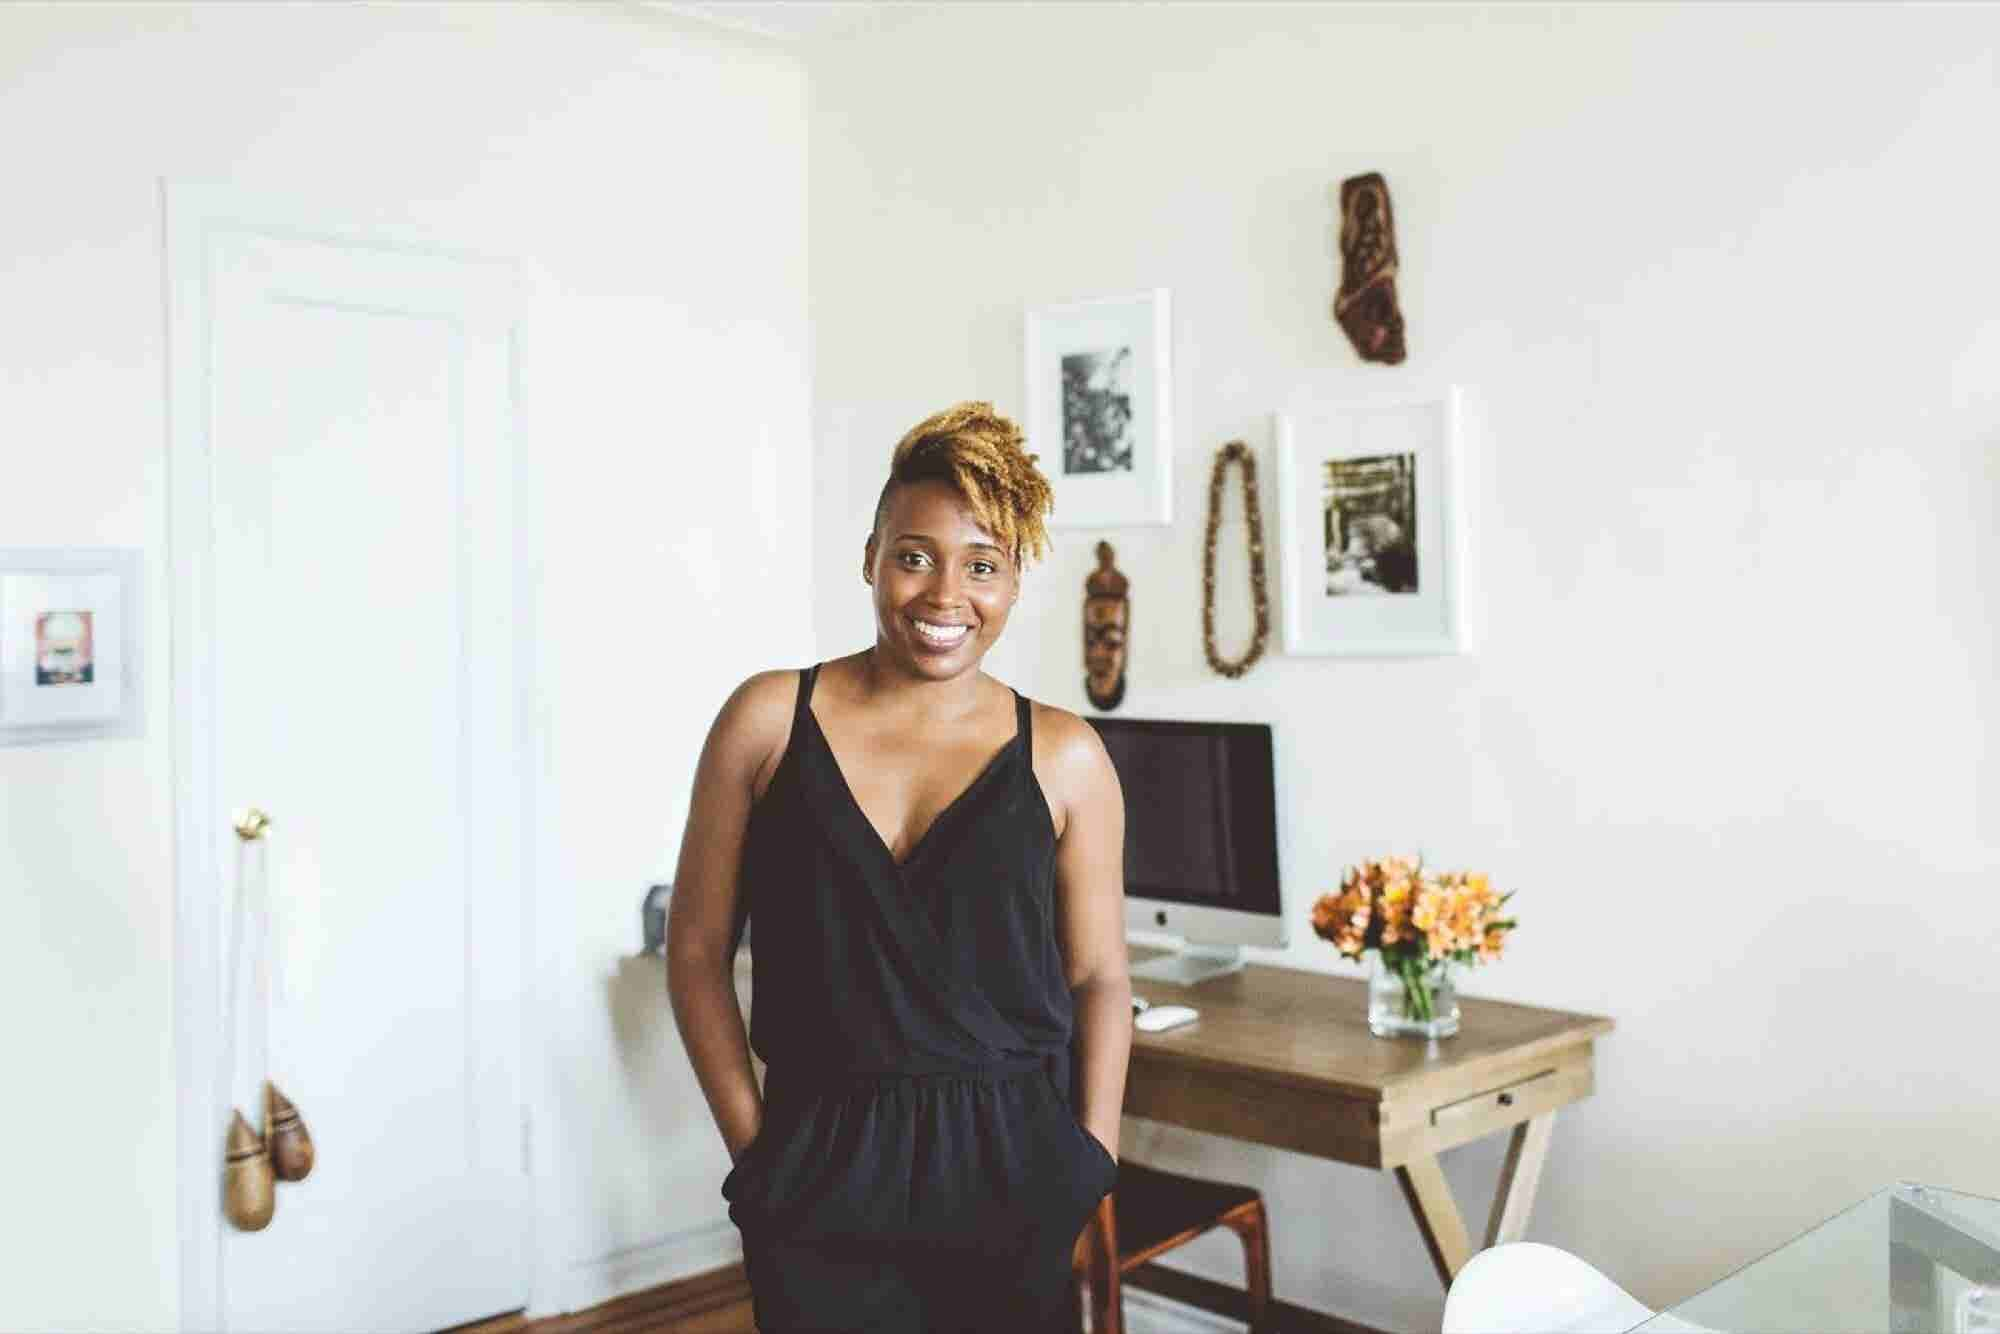 Podcast: This Trait Is Helping One Beauty Entrepreneur Build Something Rare